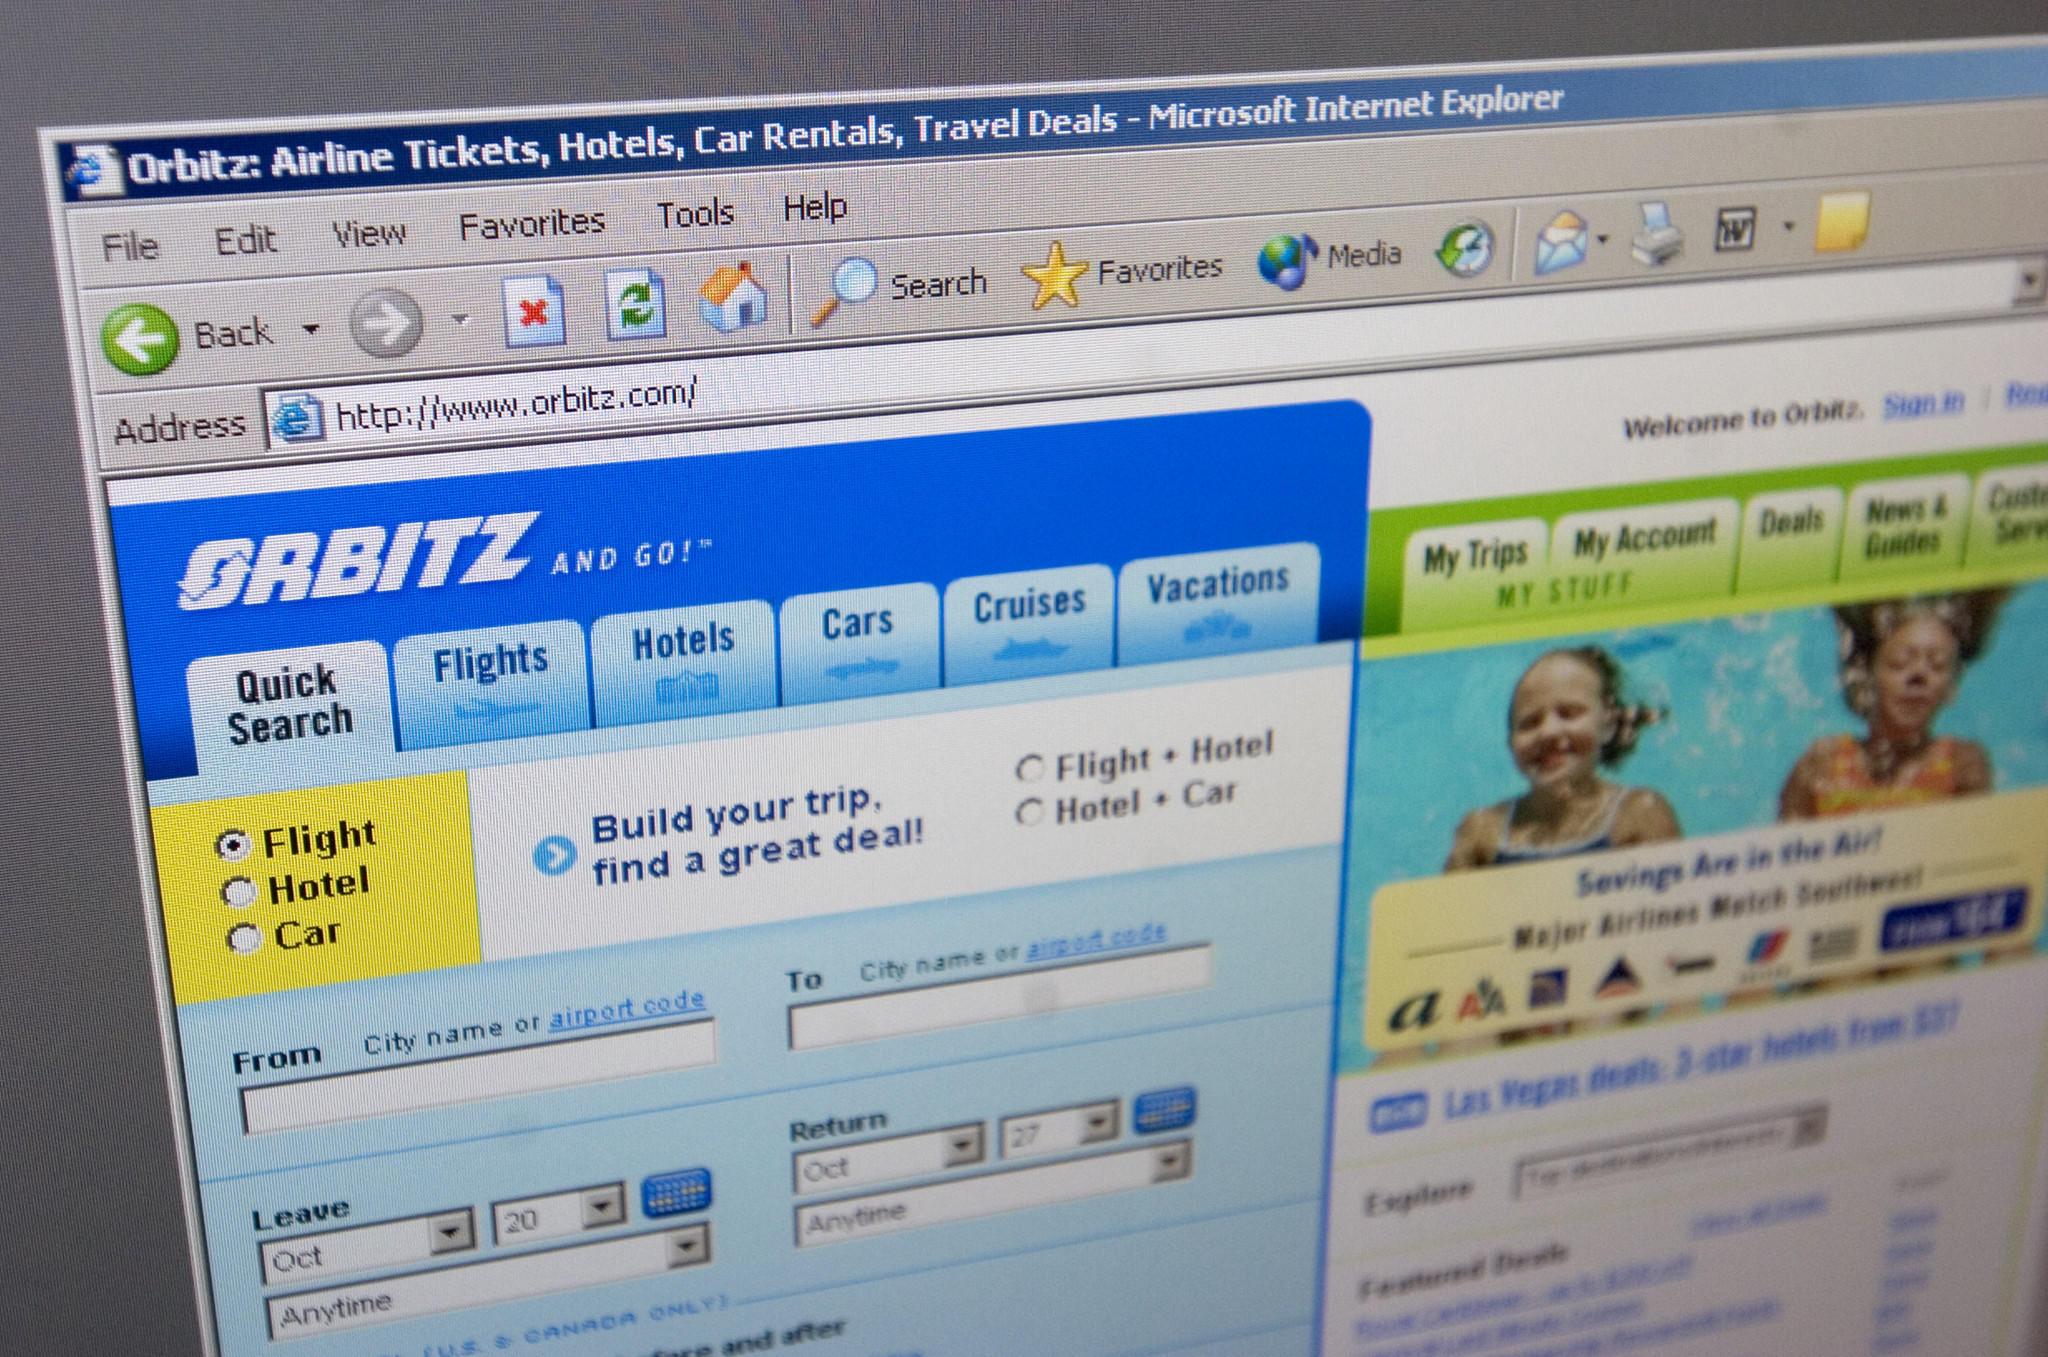 Travelocity Car Rental: Orbitz To Buy Travelocity's Back-end Business